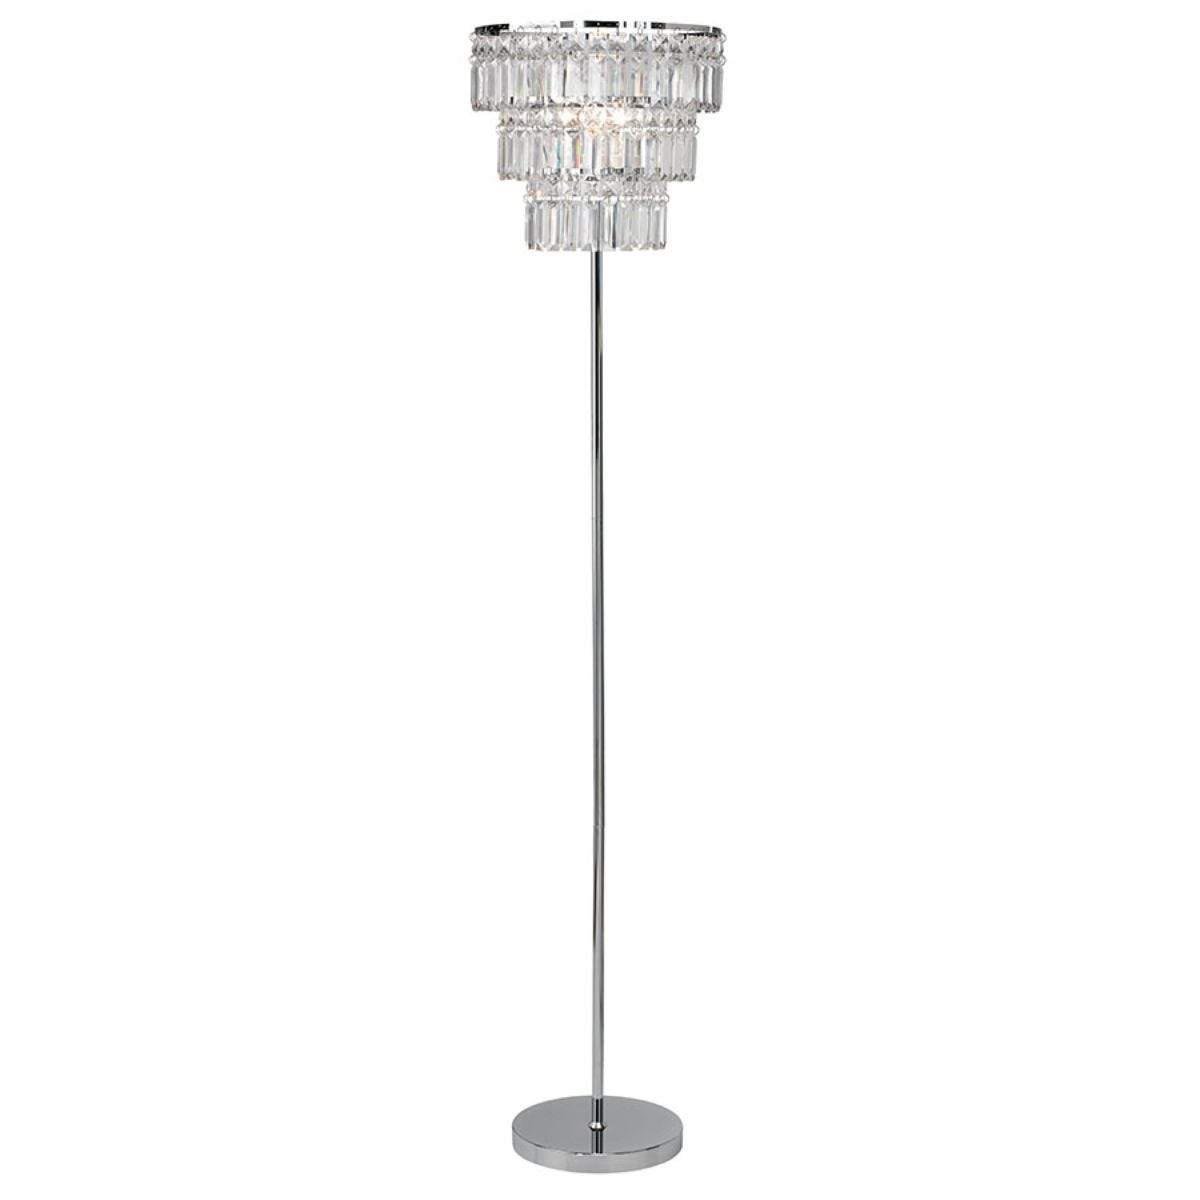 Village At Home Victoria Floor Lamp